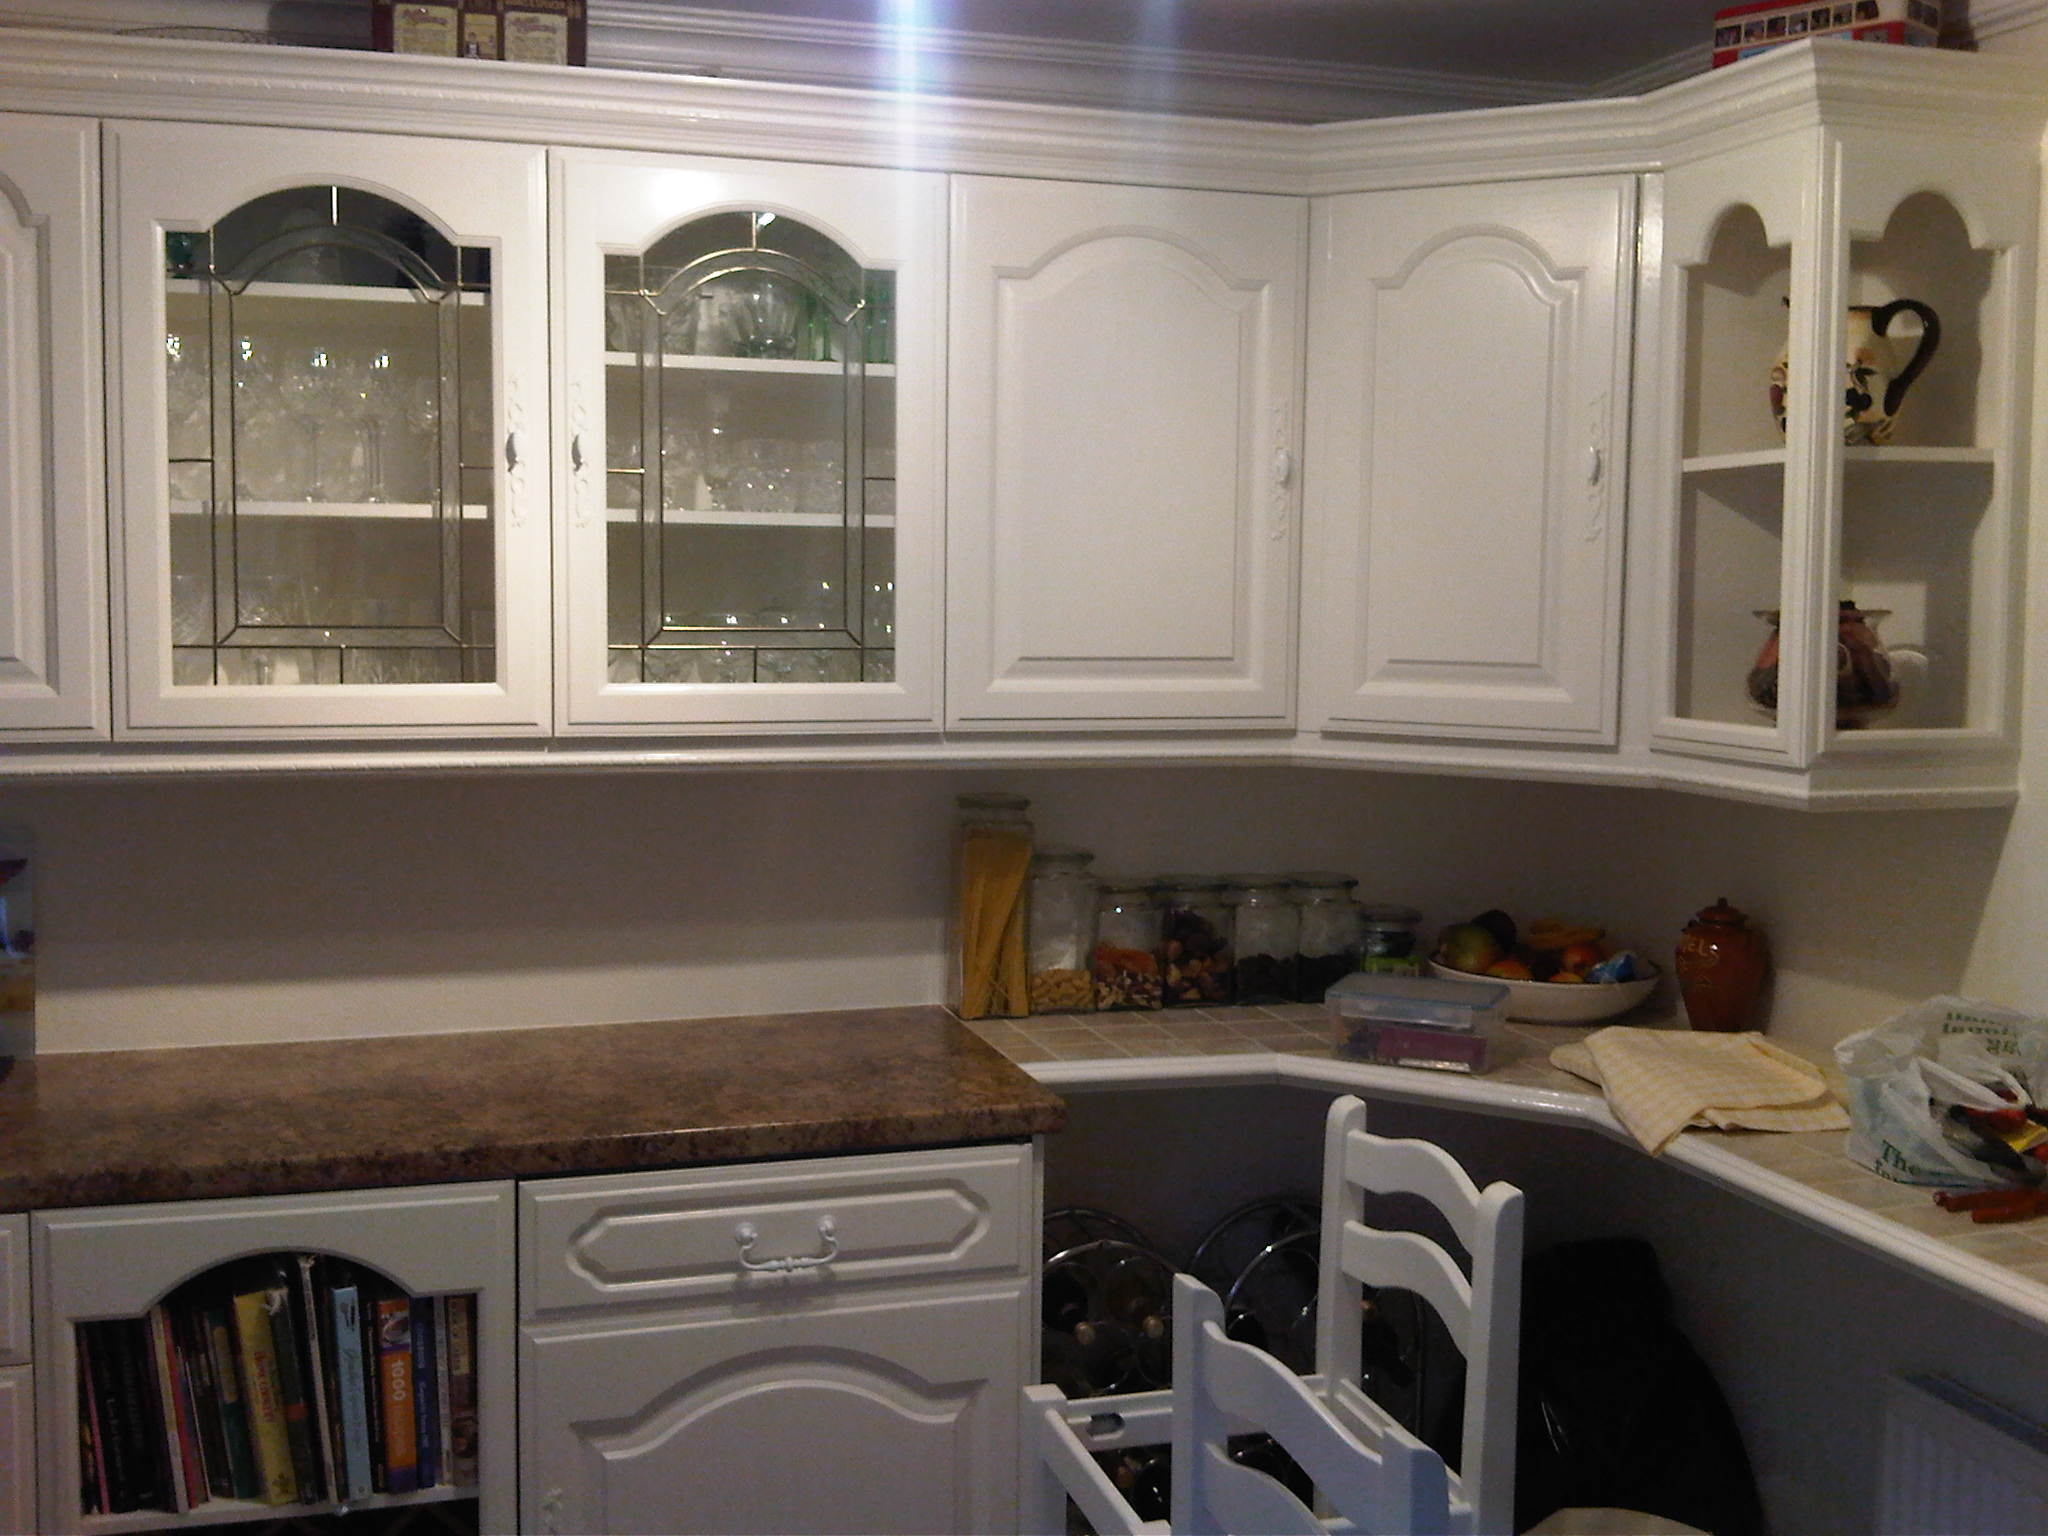 Mythic semi gloss kitchen